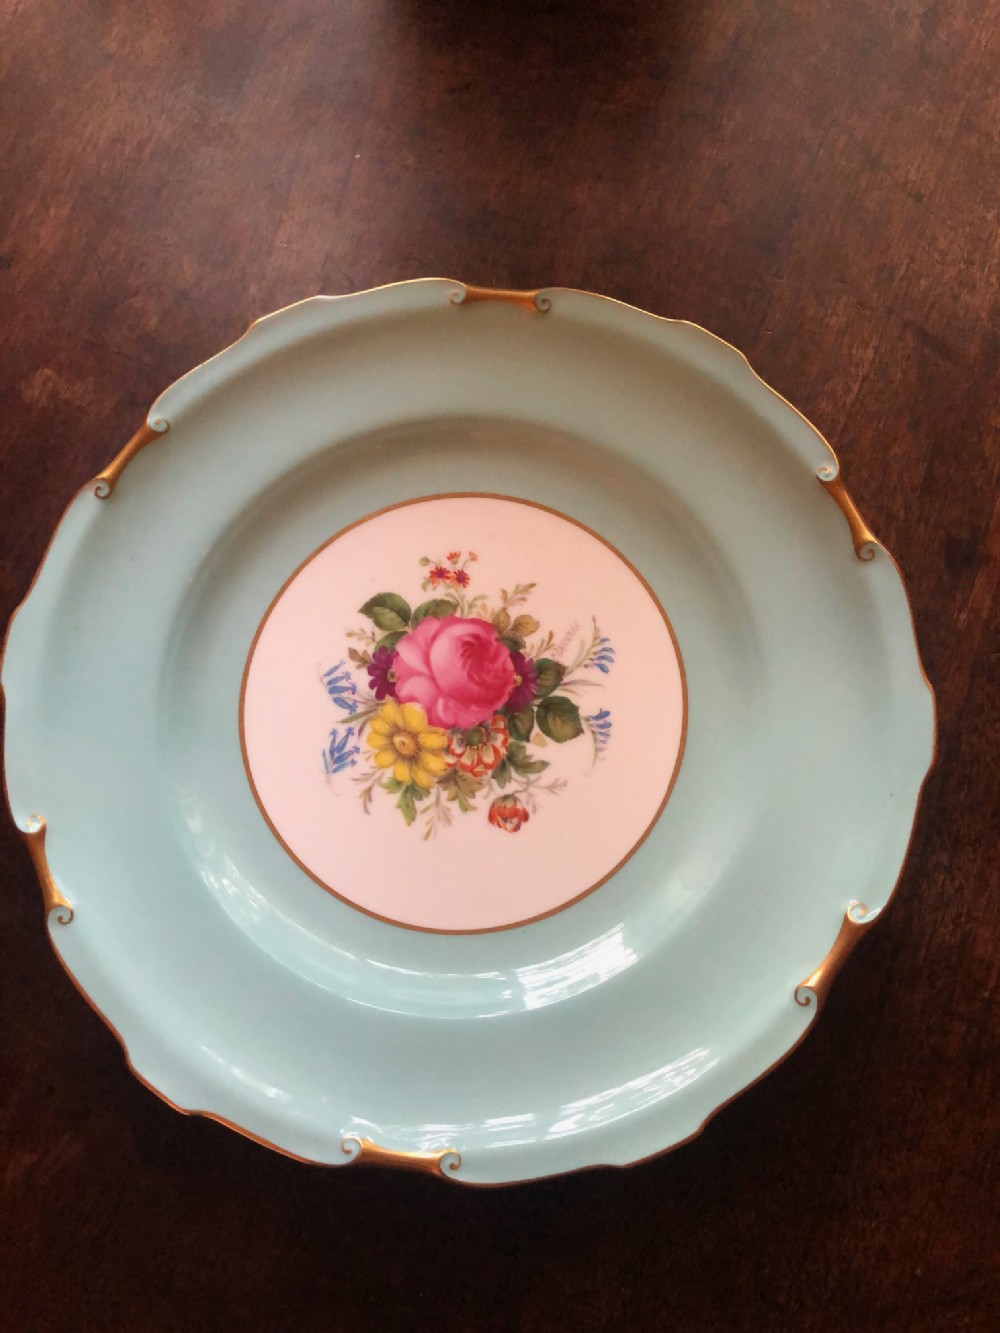 1941 royal crown derby plate hand painted by f garnett